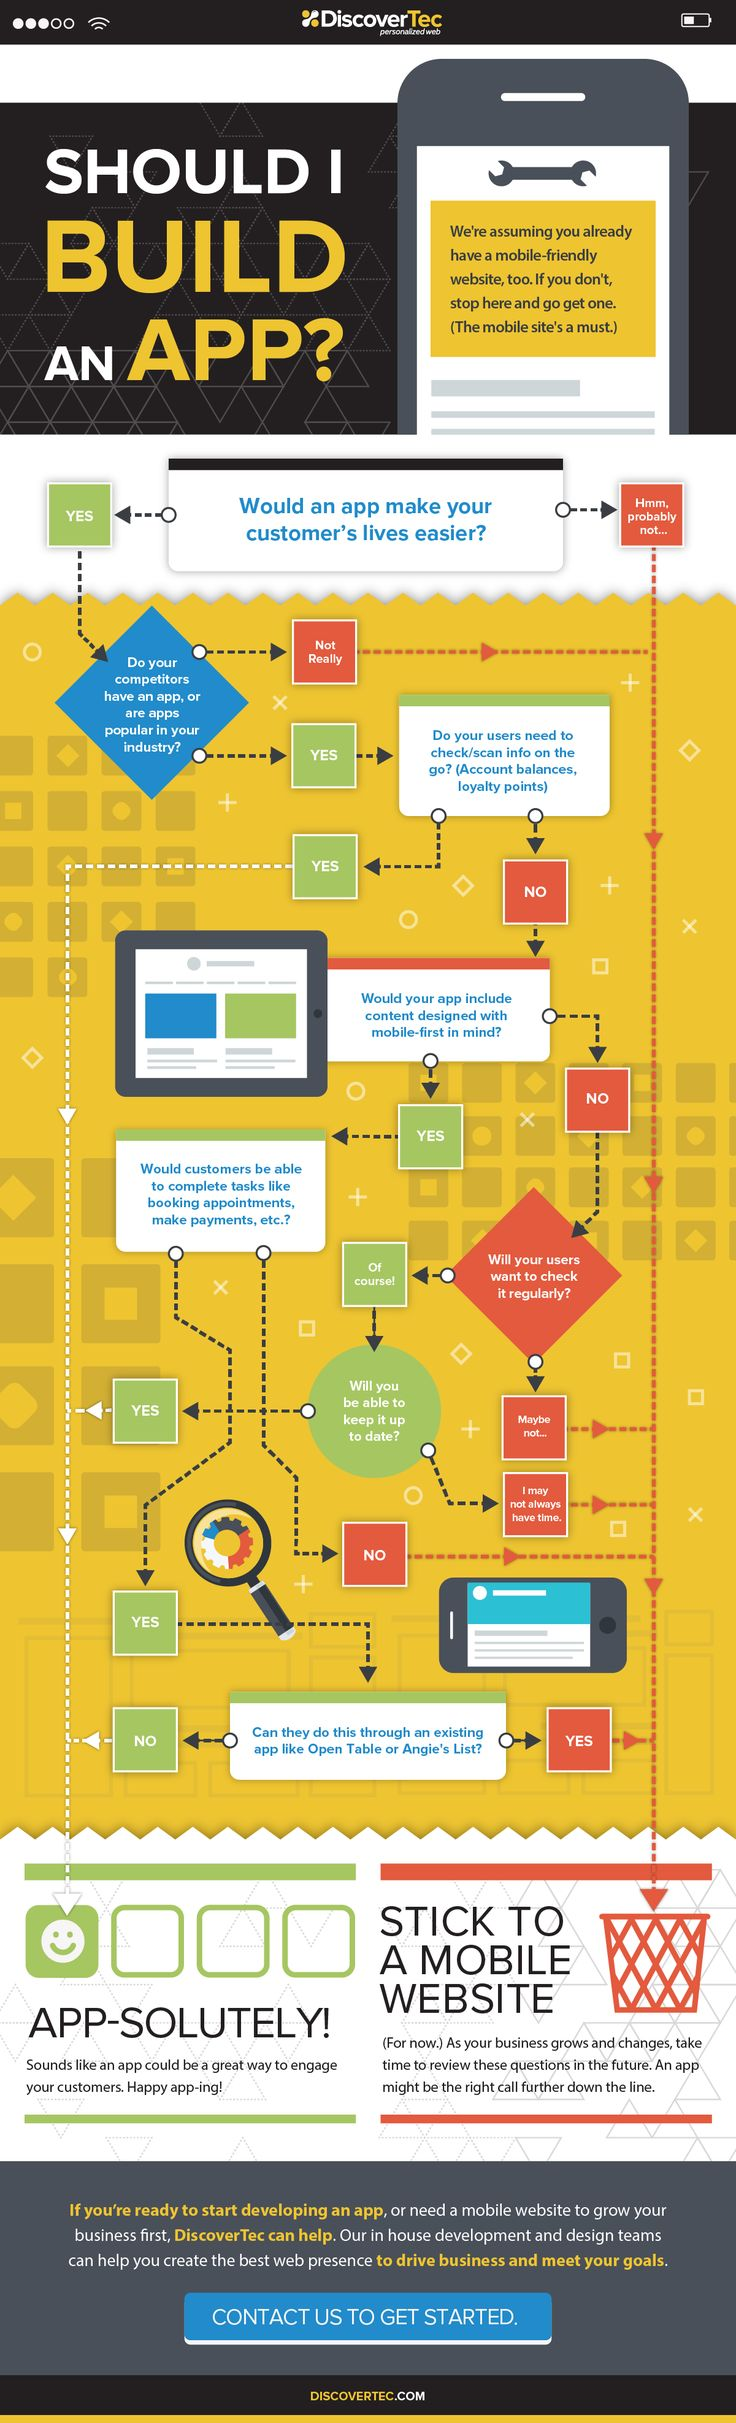 Do you need to build an App? Use this Infographic to see if it's necessary to build one or not.